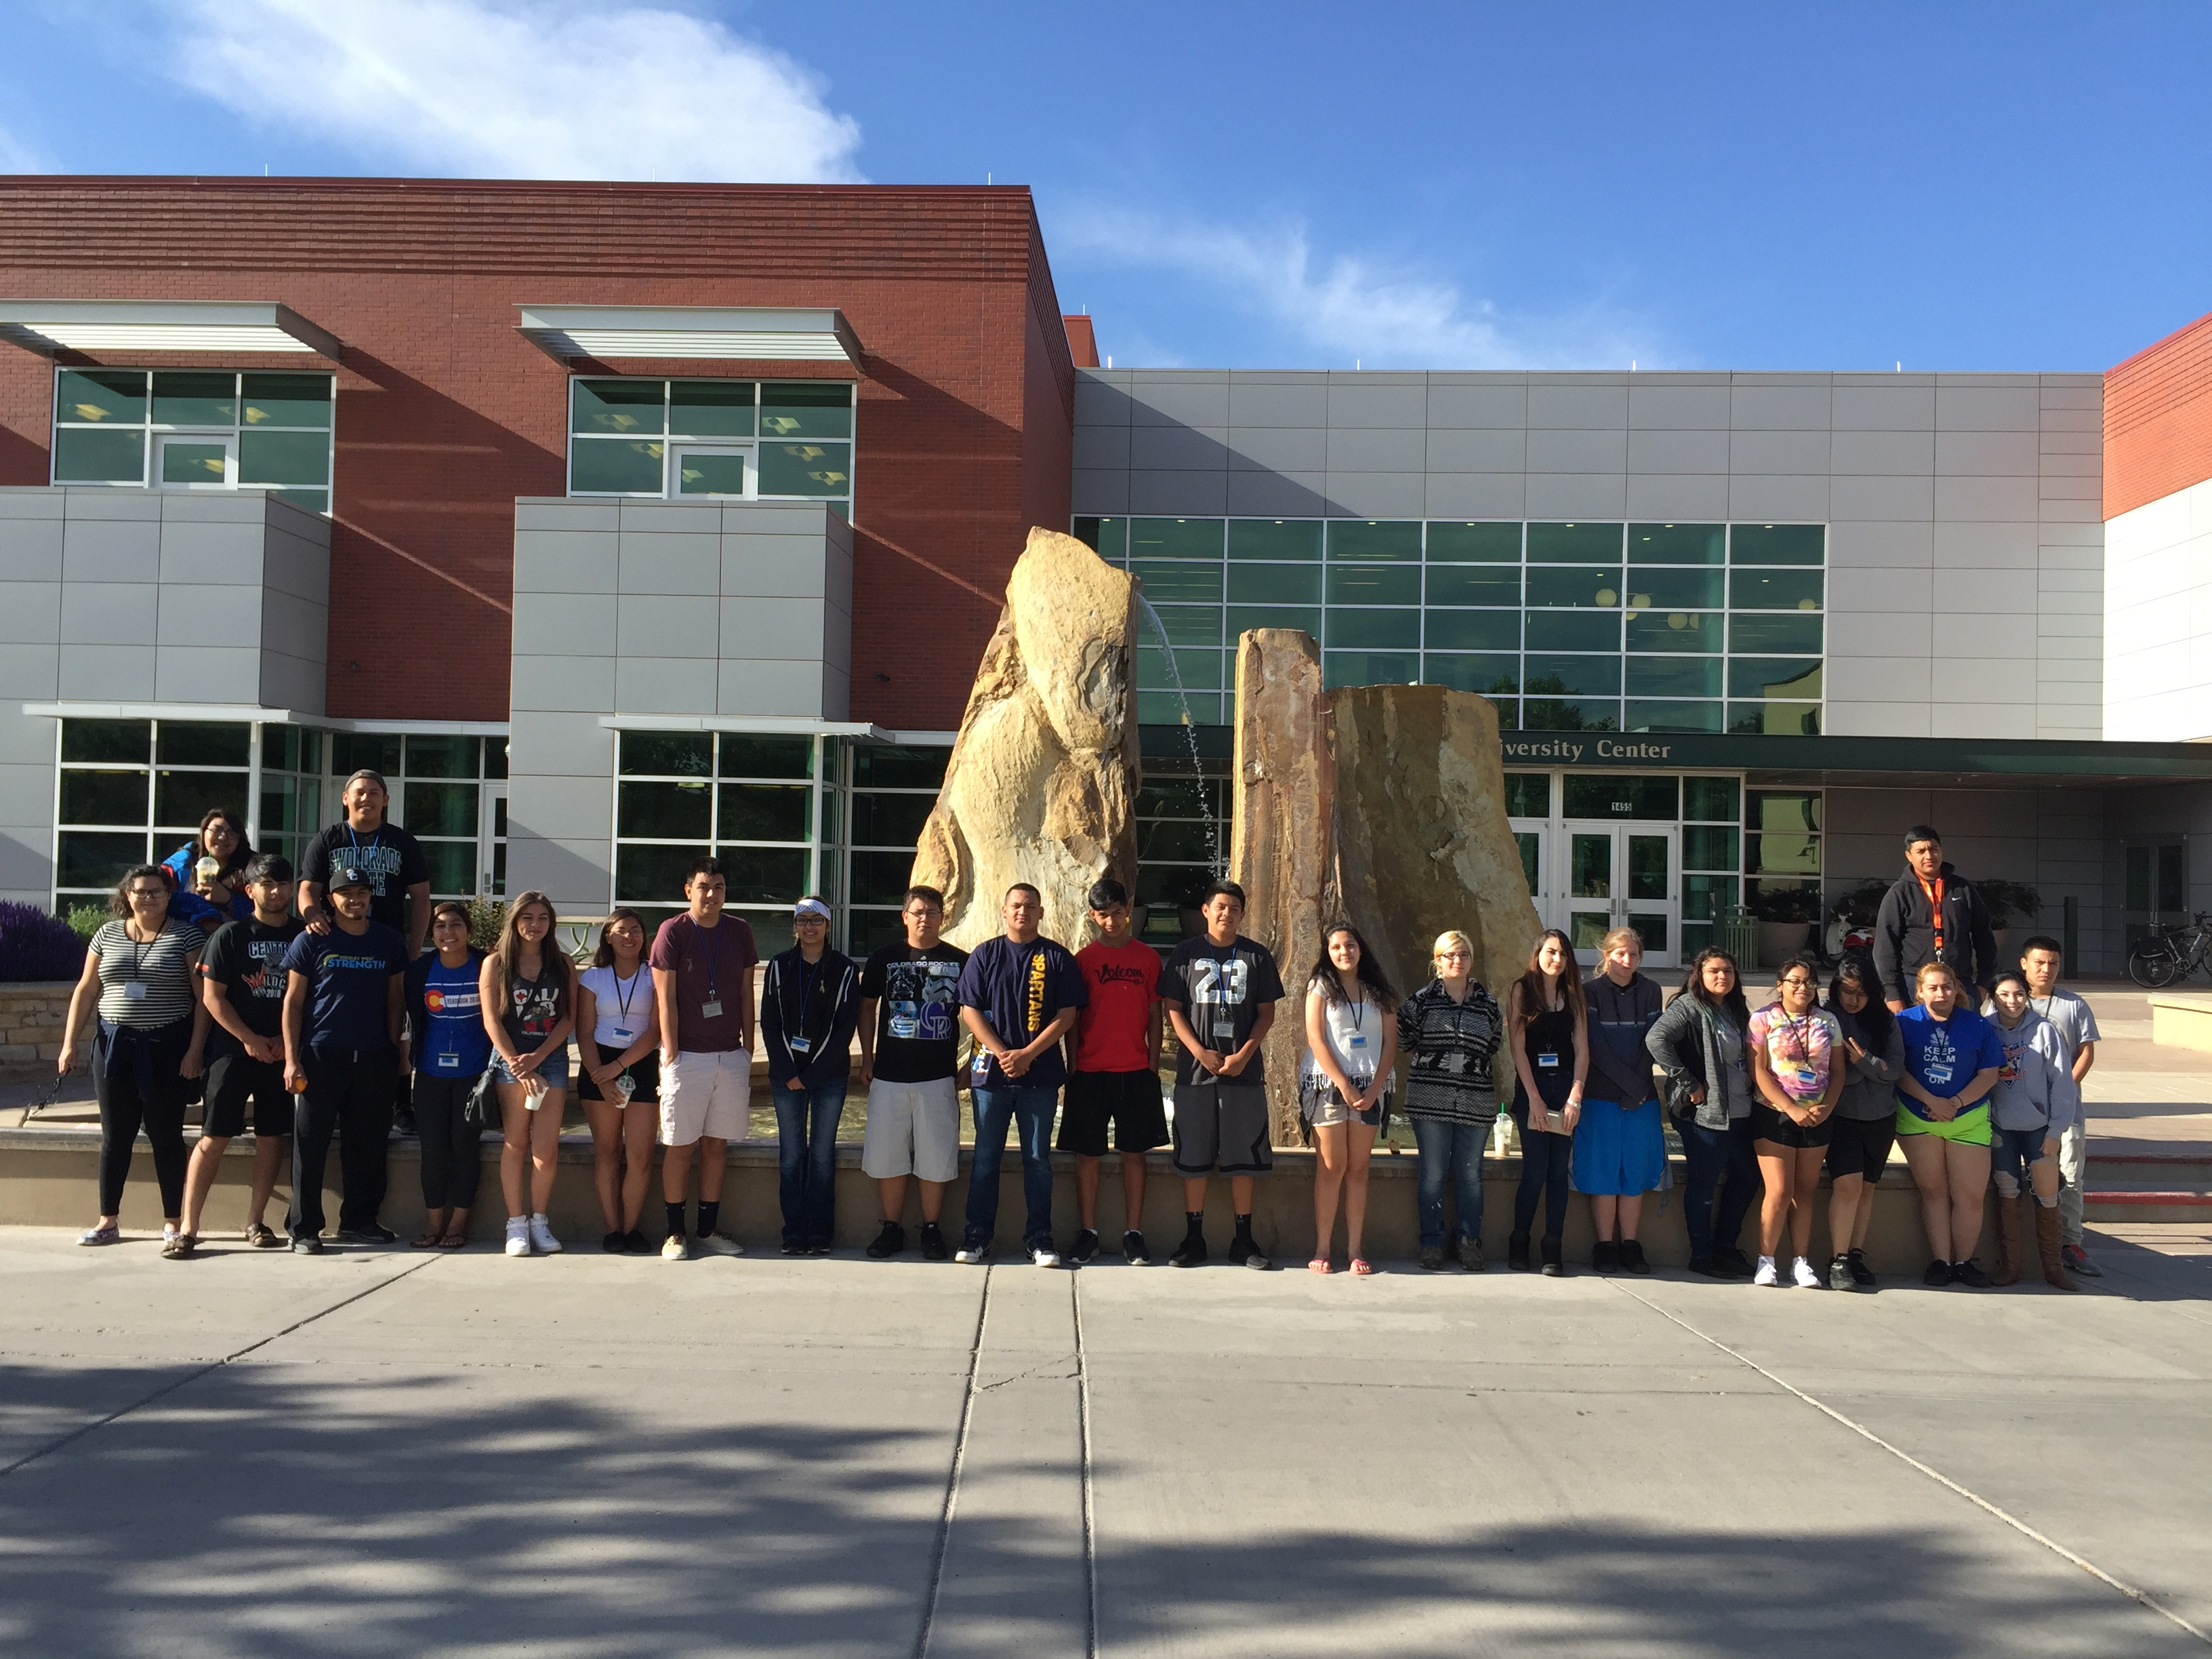 Michelle (6th from the left!) and her peers on a field trip to Colorado Mesa University